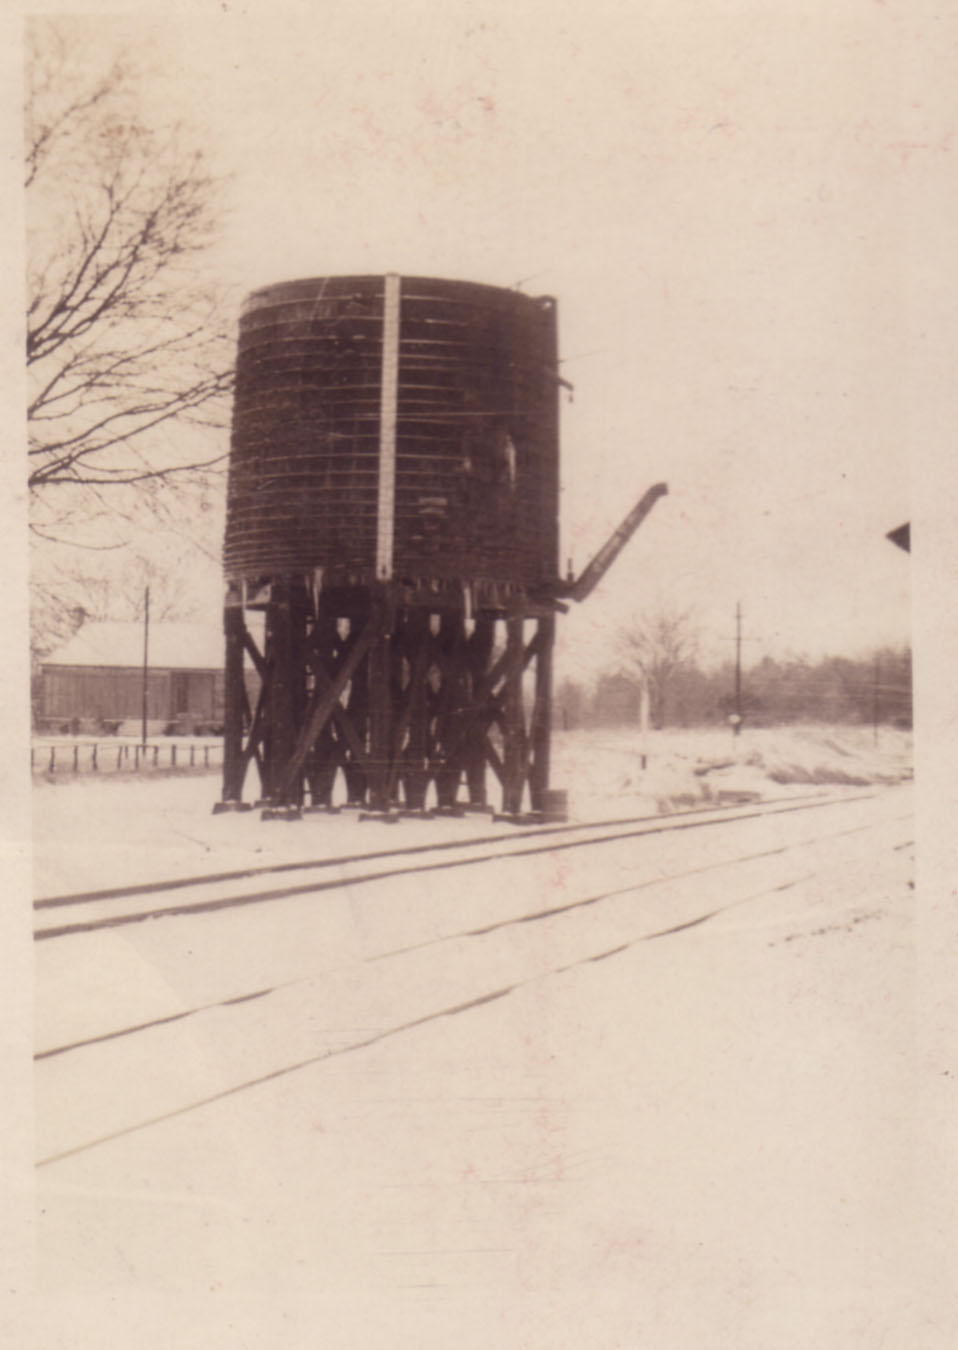 Water tower for steam trains.  Photo by Hudnalle McLean Sr.